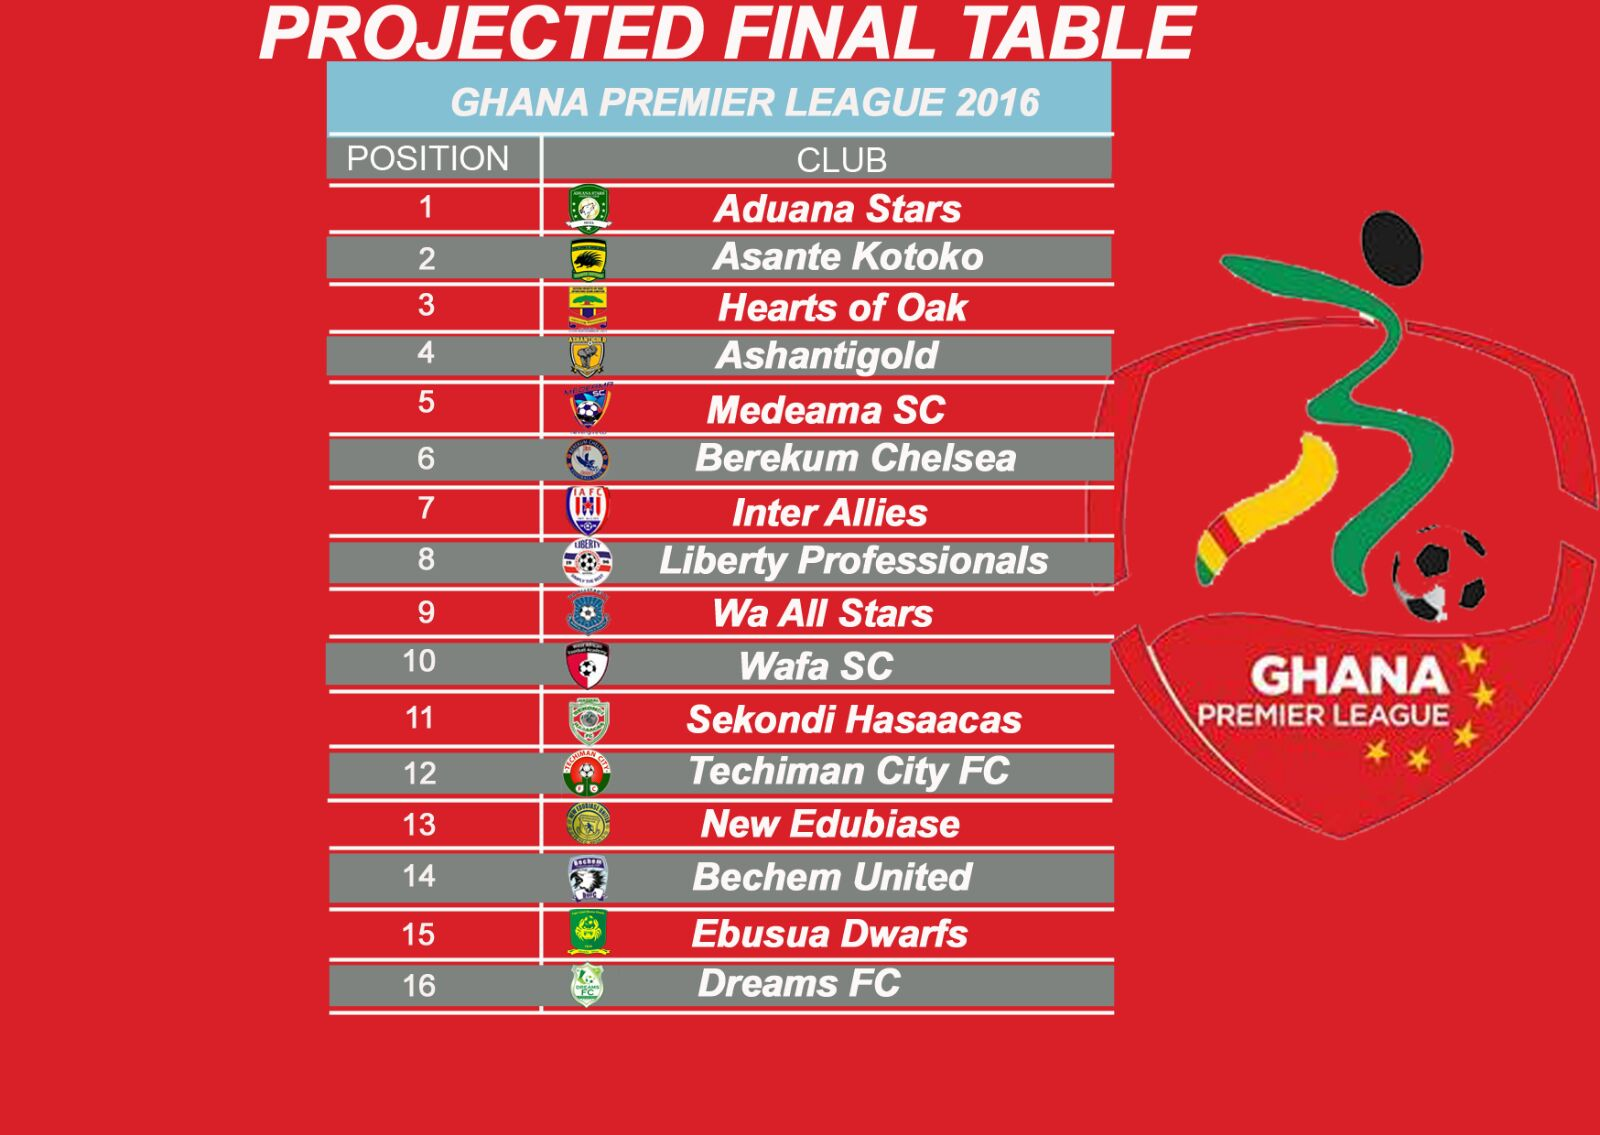 Feature my projected final 2016 ghana premier league for League table 2016